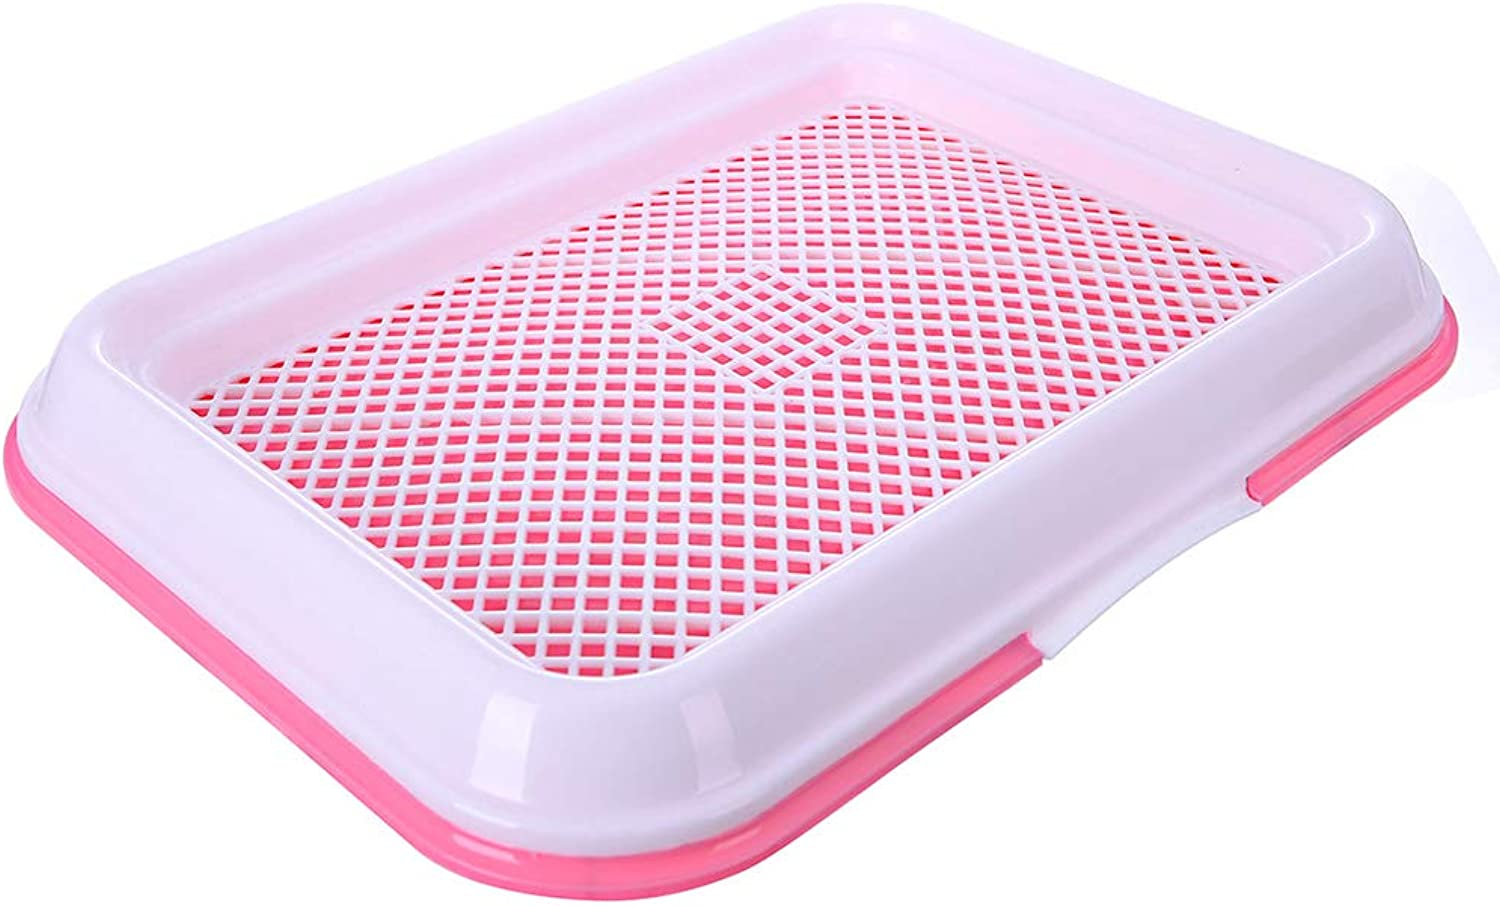 North cool Net Format Pet Cat Dog Toilet, Pet Potty Urinal Small Large Dog Teddy Toilet 34  47  5cm (color   Pink)